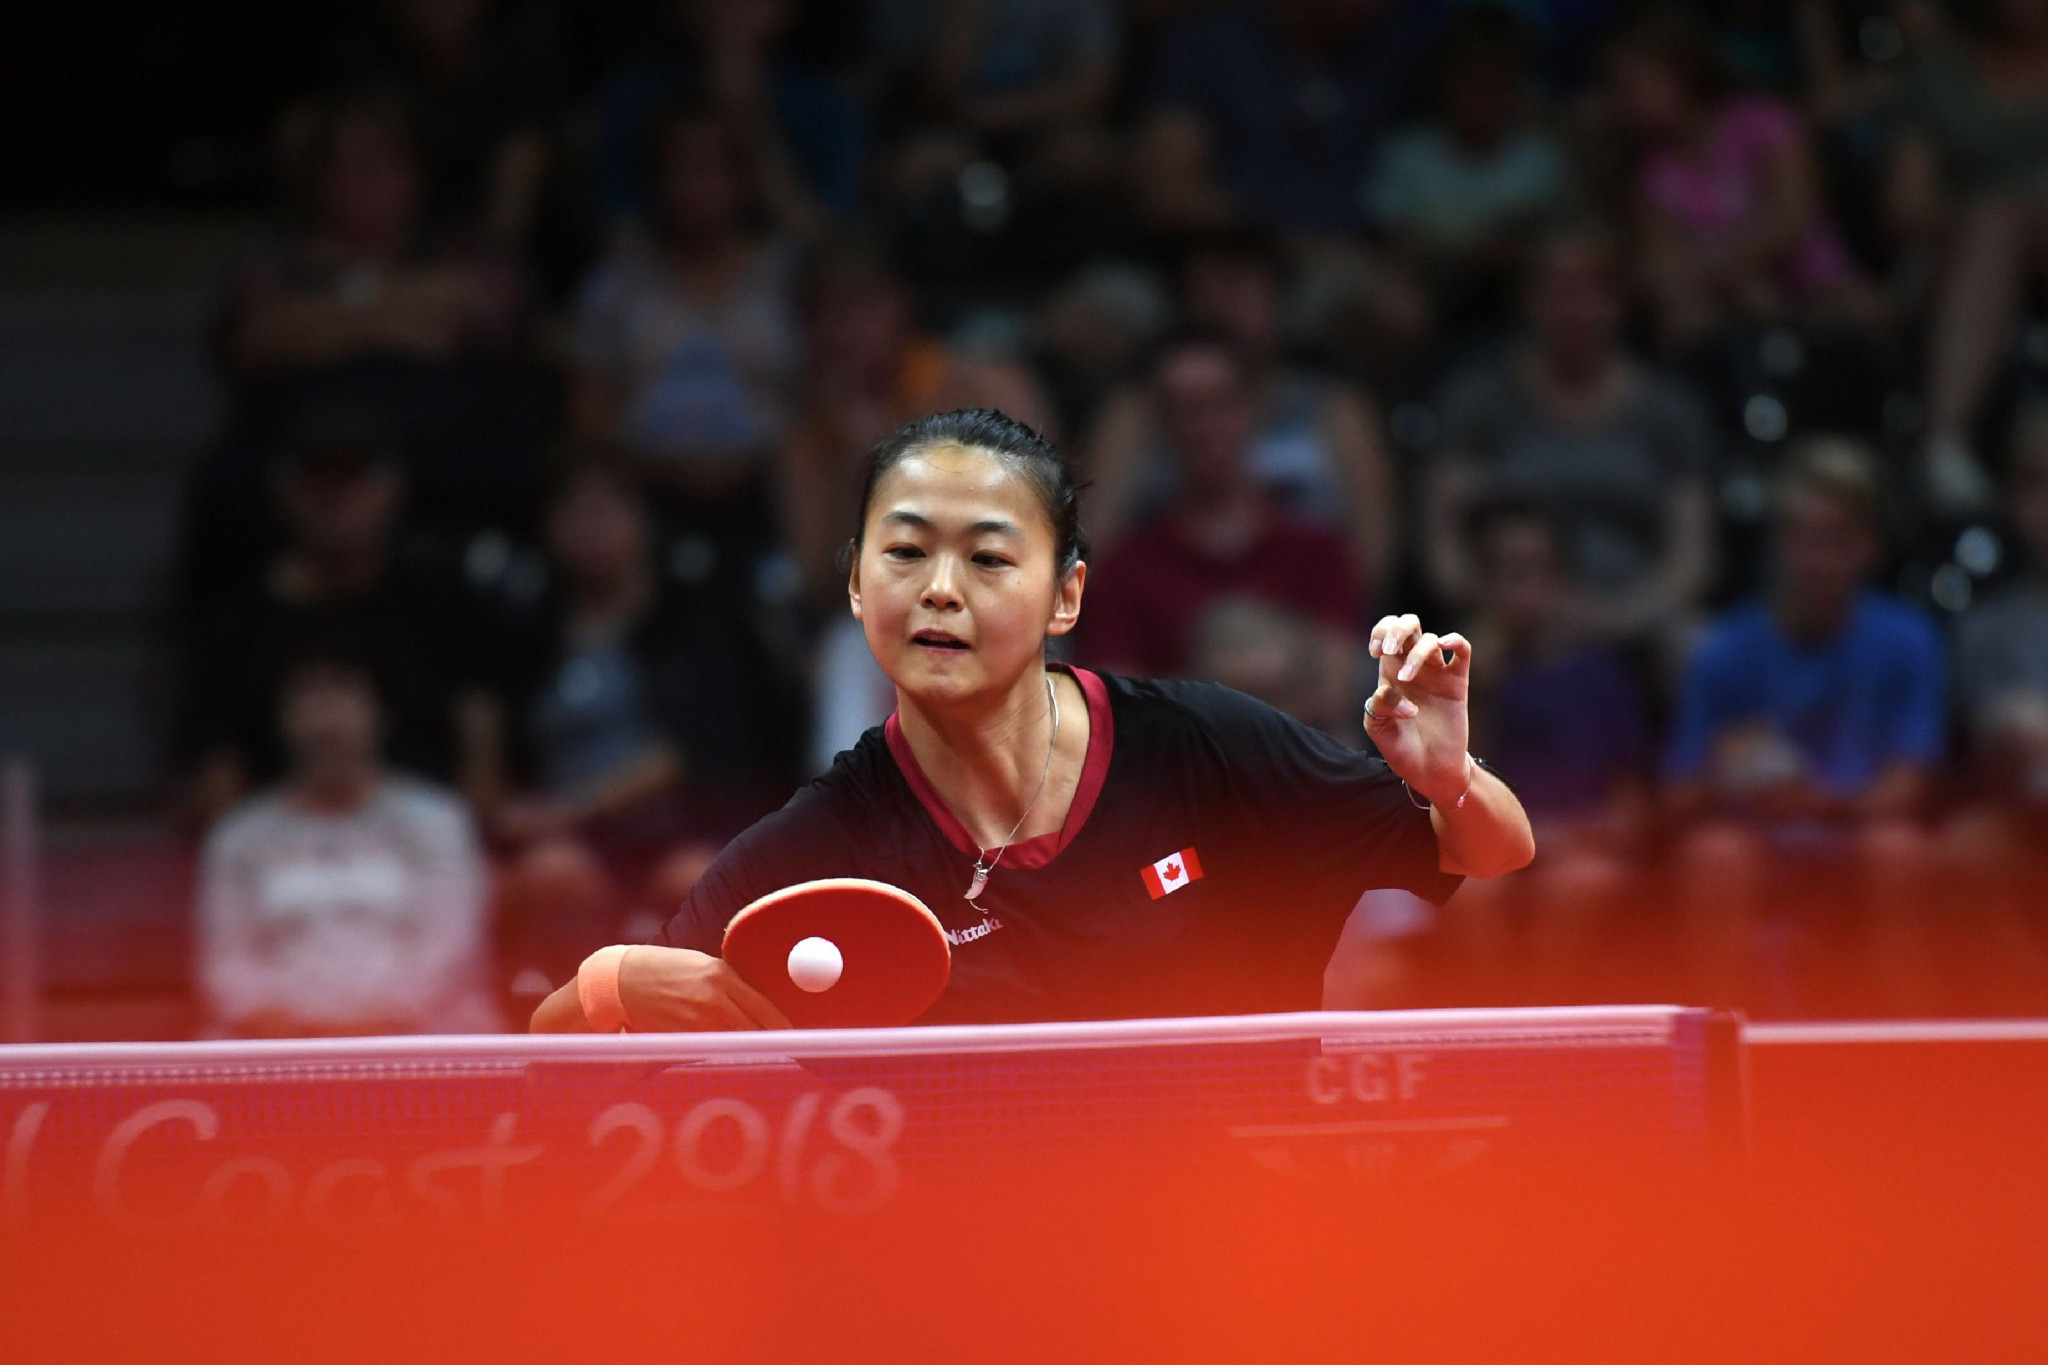 Zhang Mo will hope to improve on her silver medal from 2017 ©Getty Images